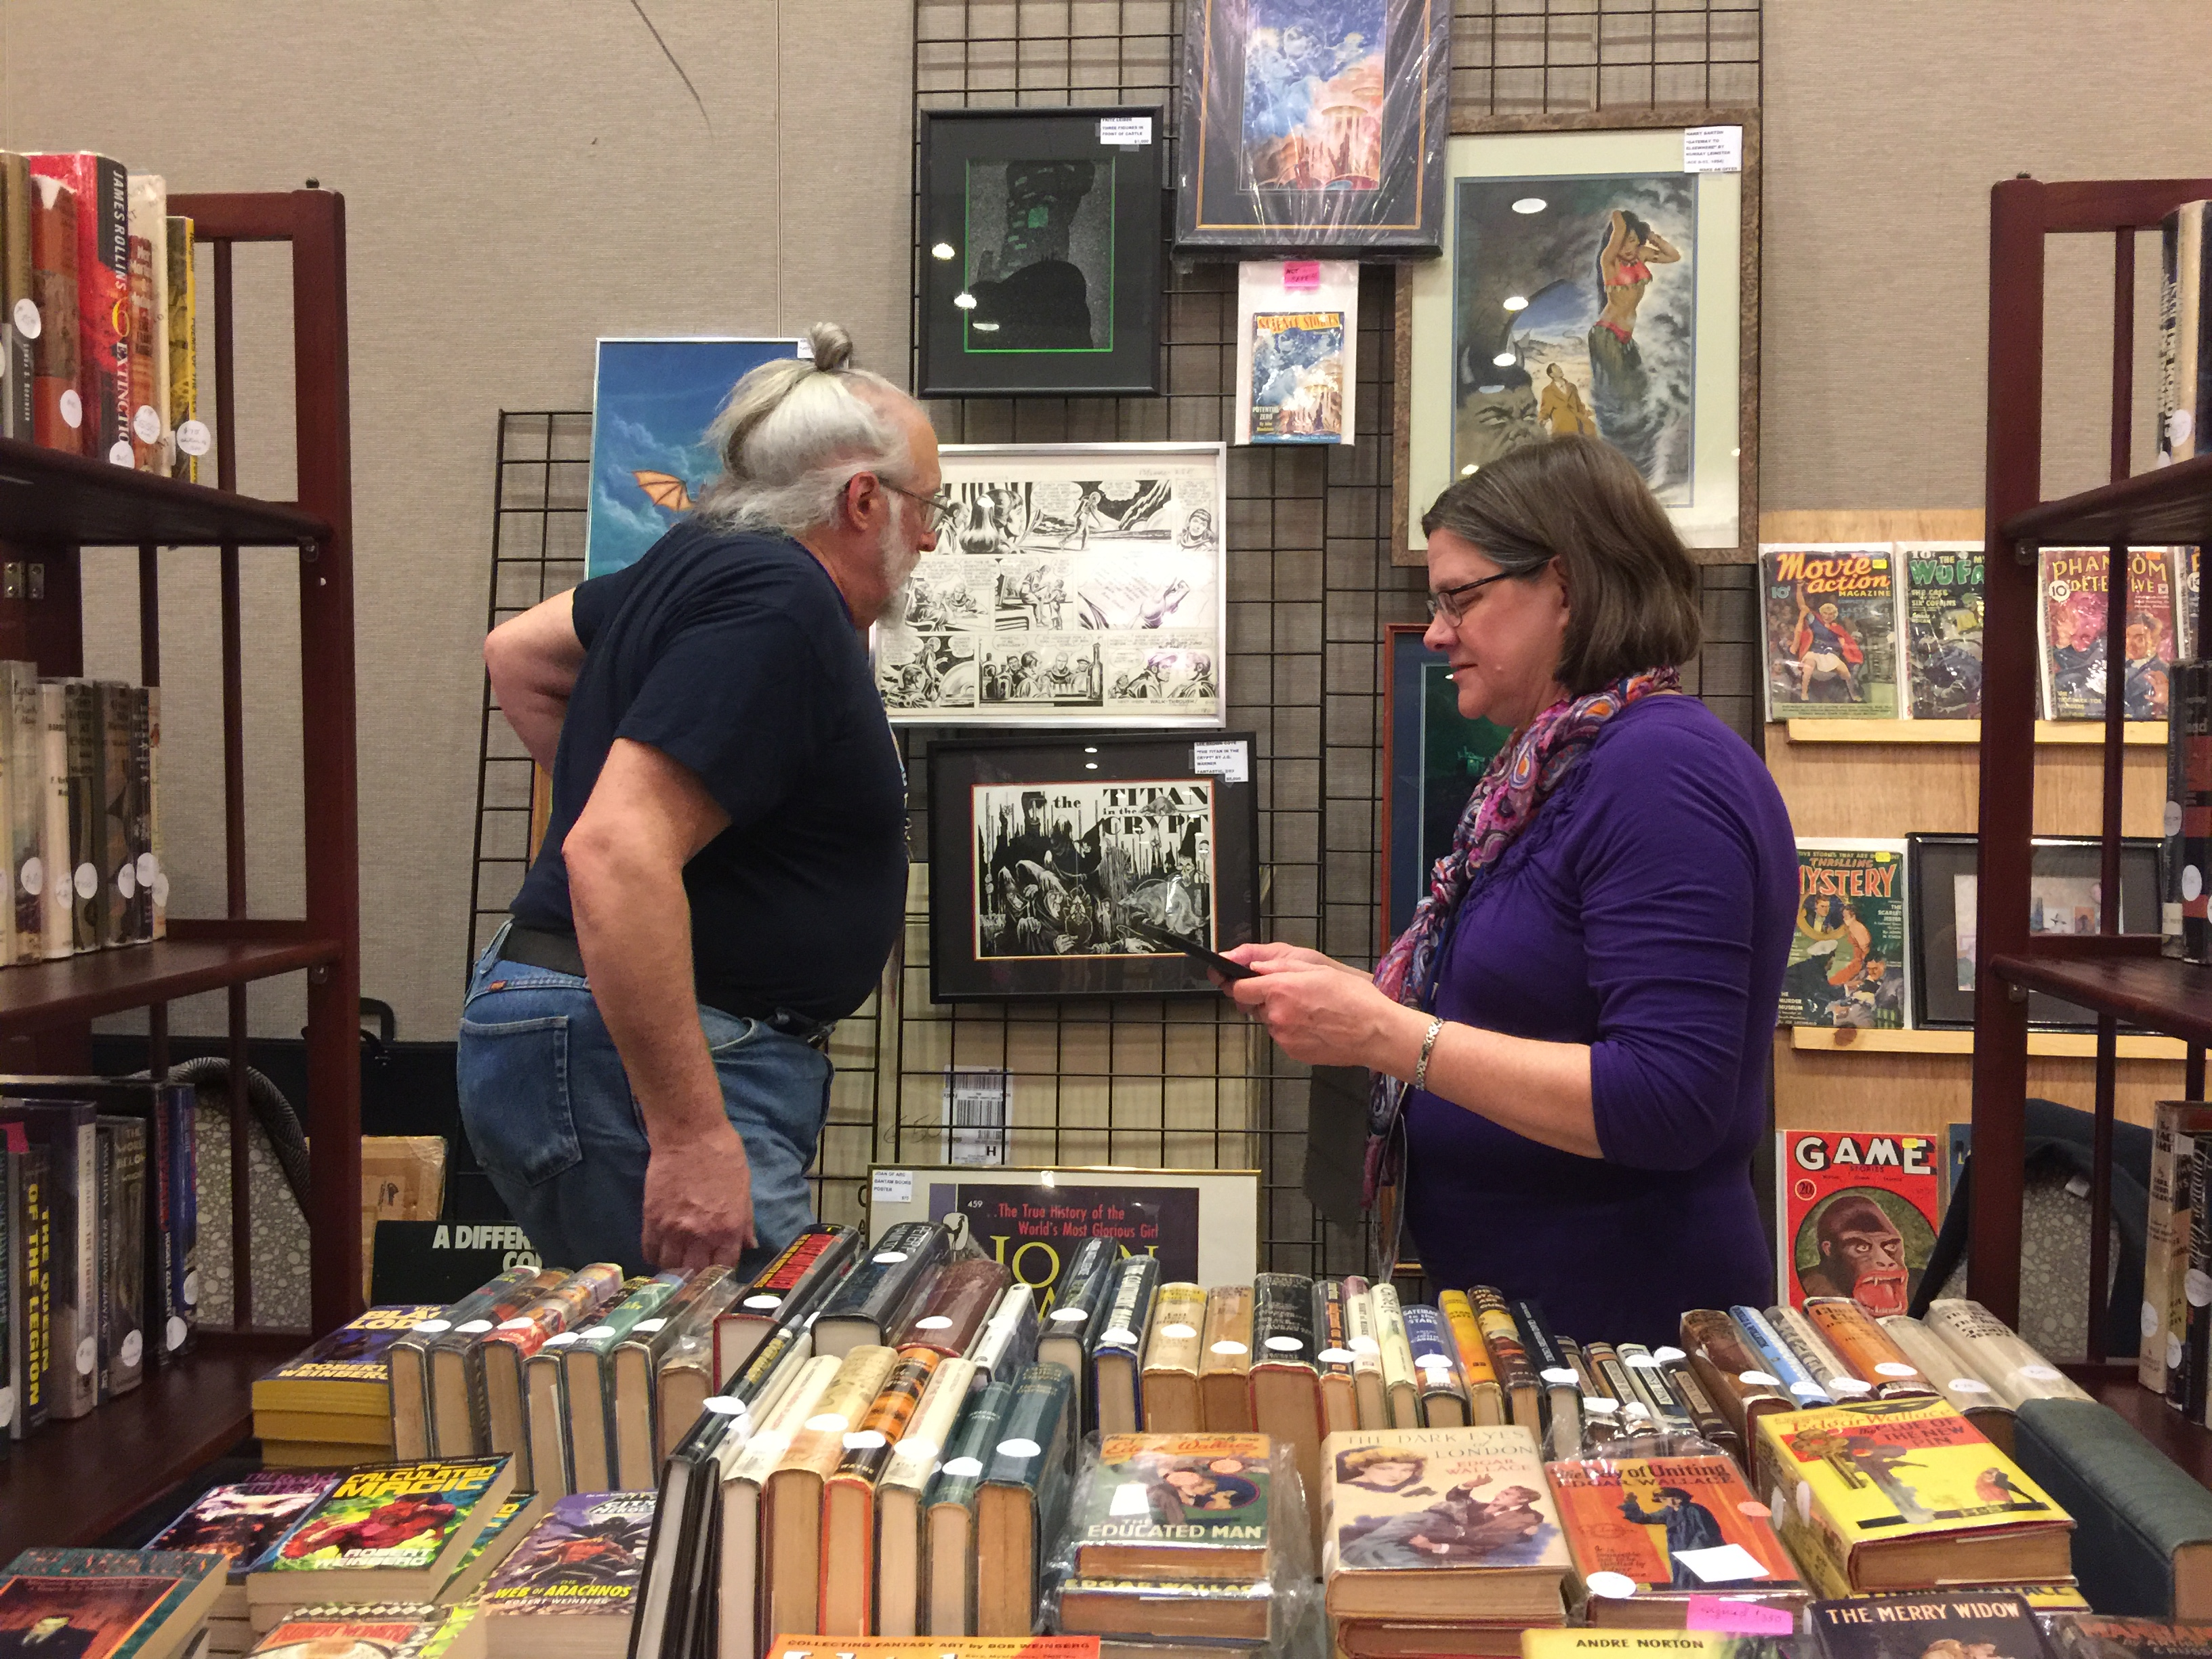 Weinberg Books had original art and books